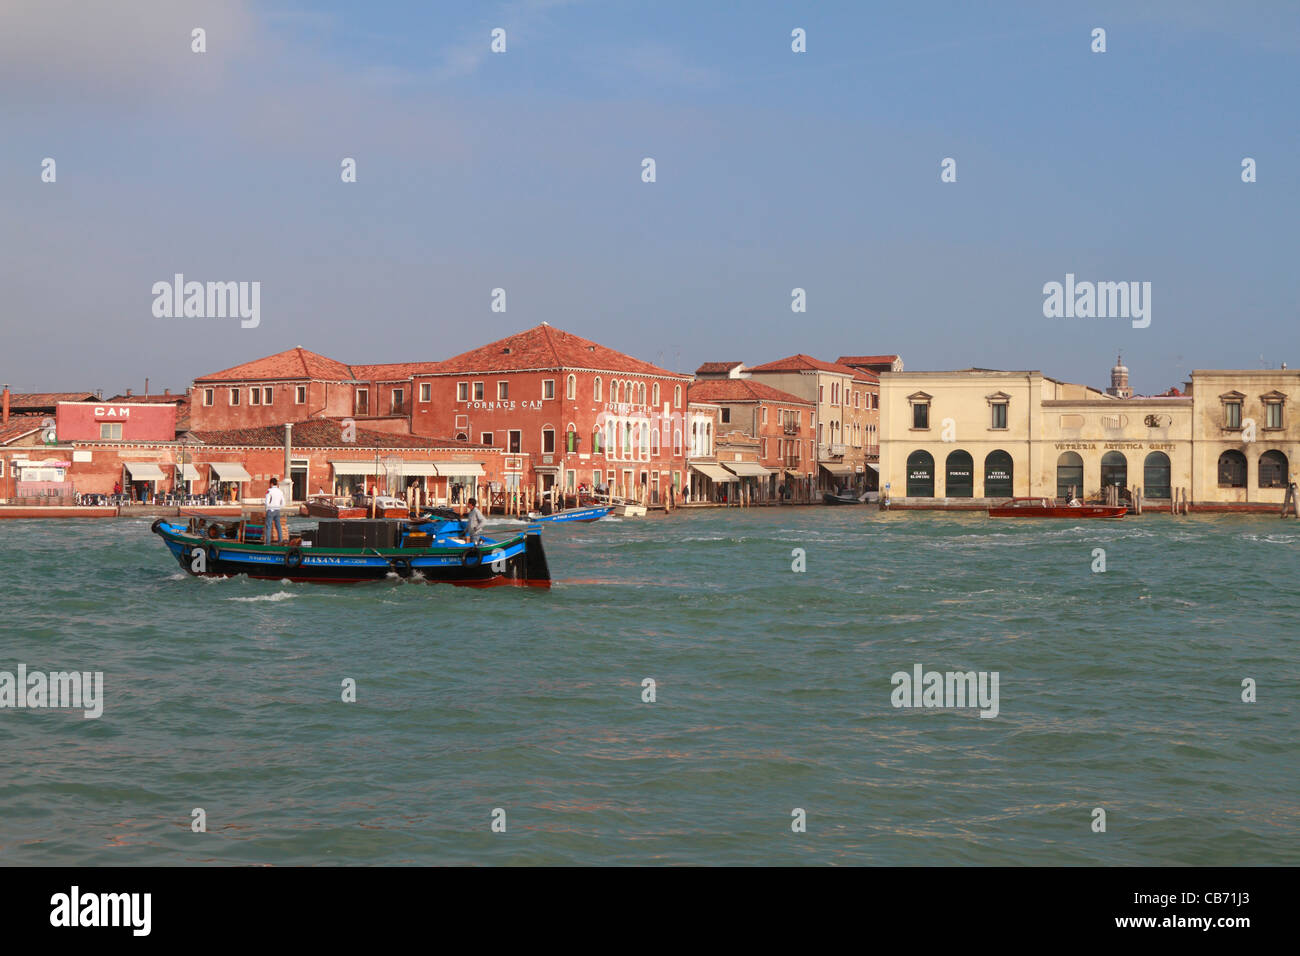 A fishing boat passes fornace glass factories, Murano, Italy, Europe. - Stock Image